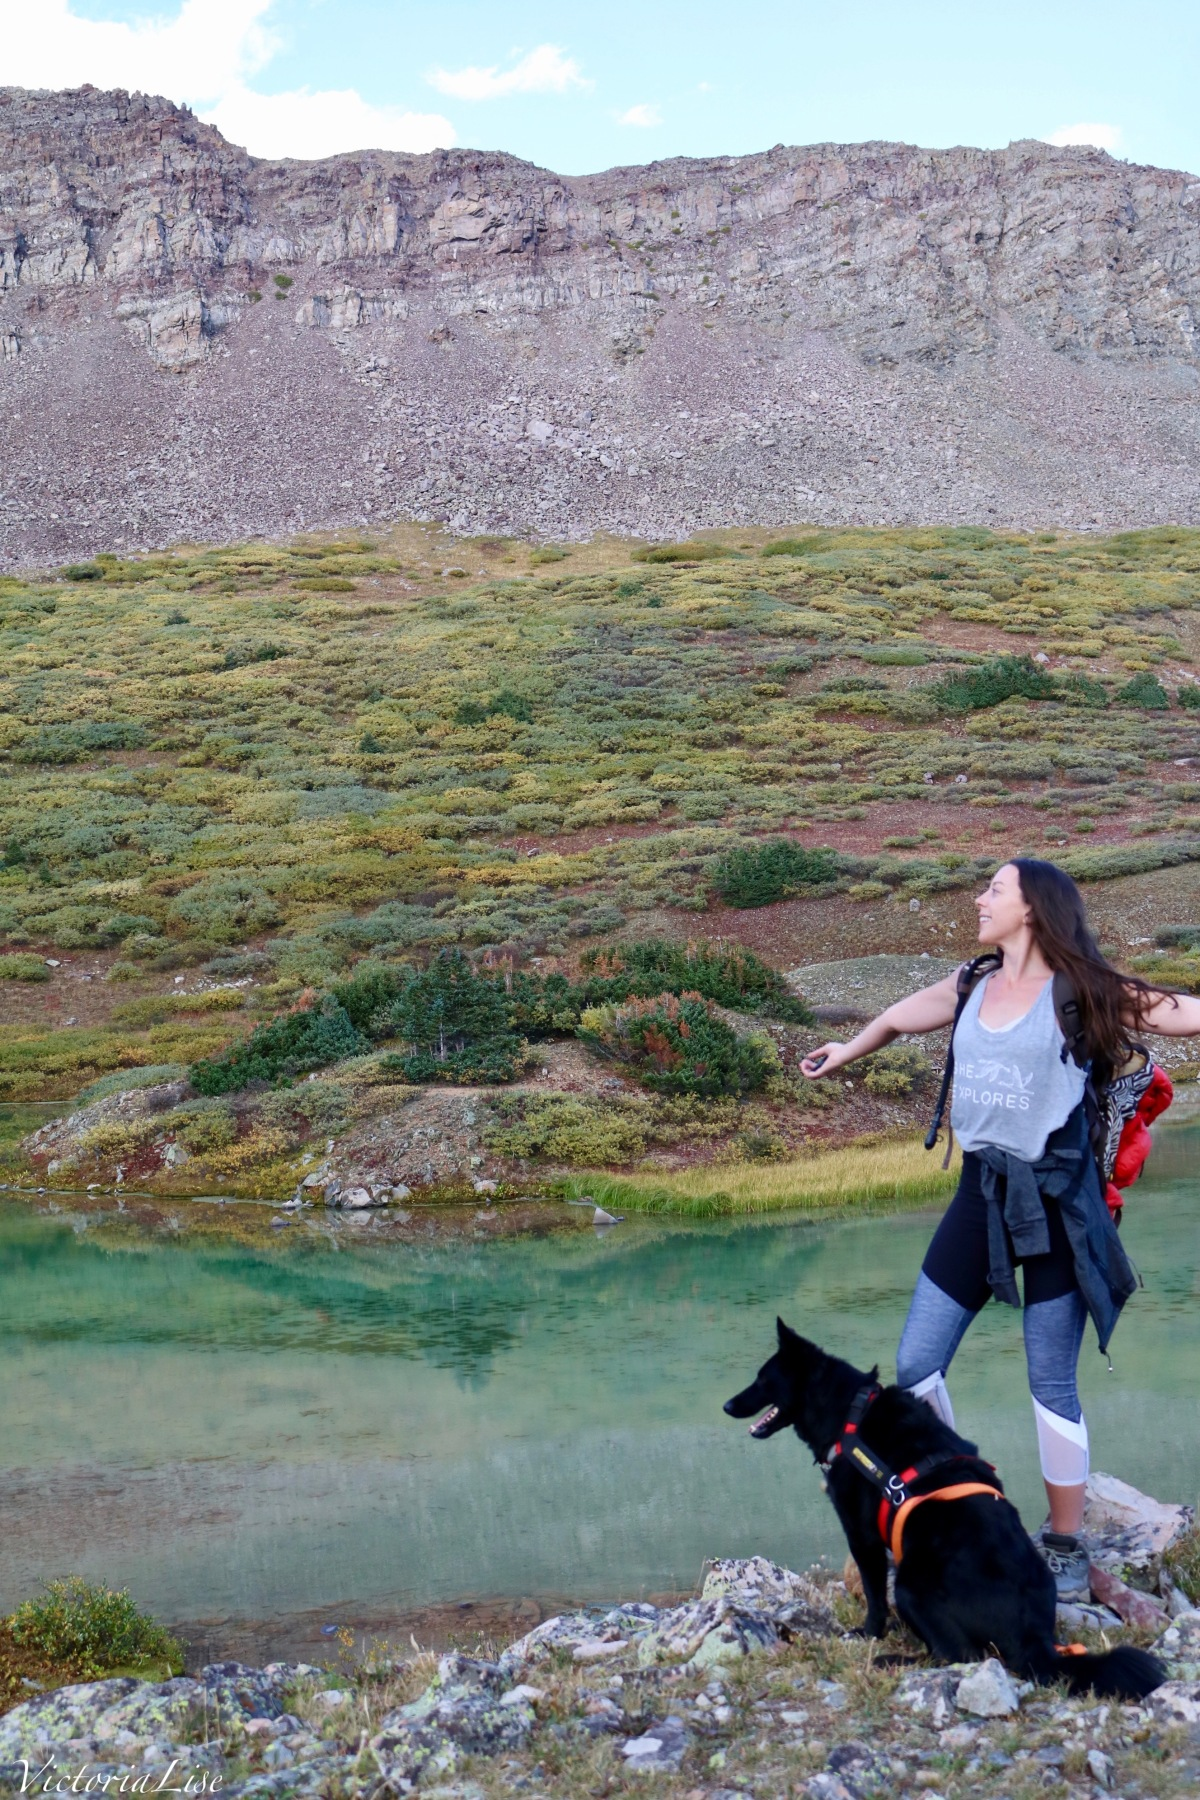 Victoria Lise and rescue pup, Styx at Twin Lakes, Colorado.